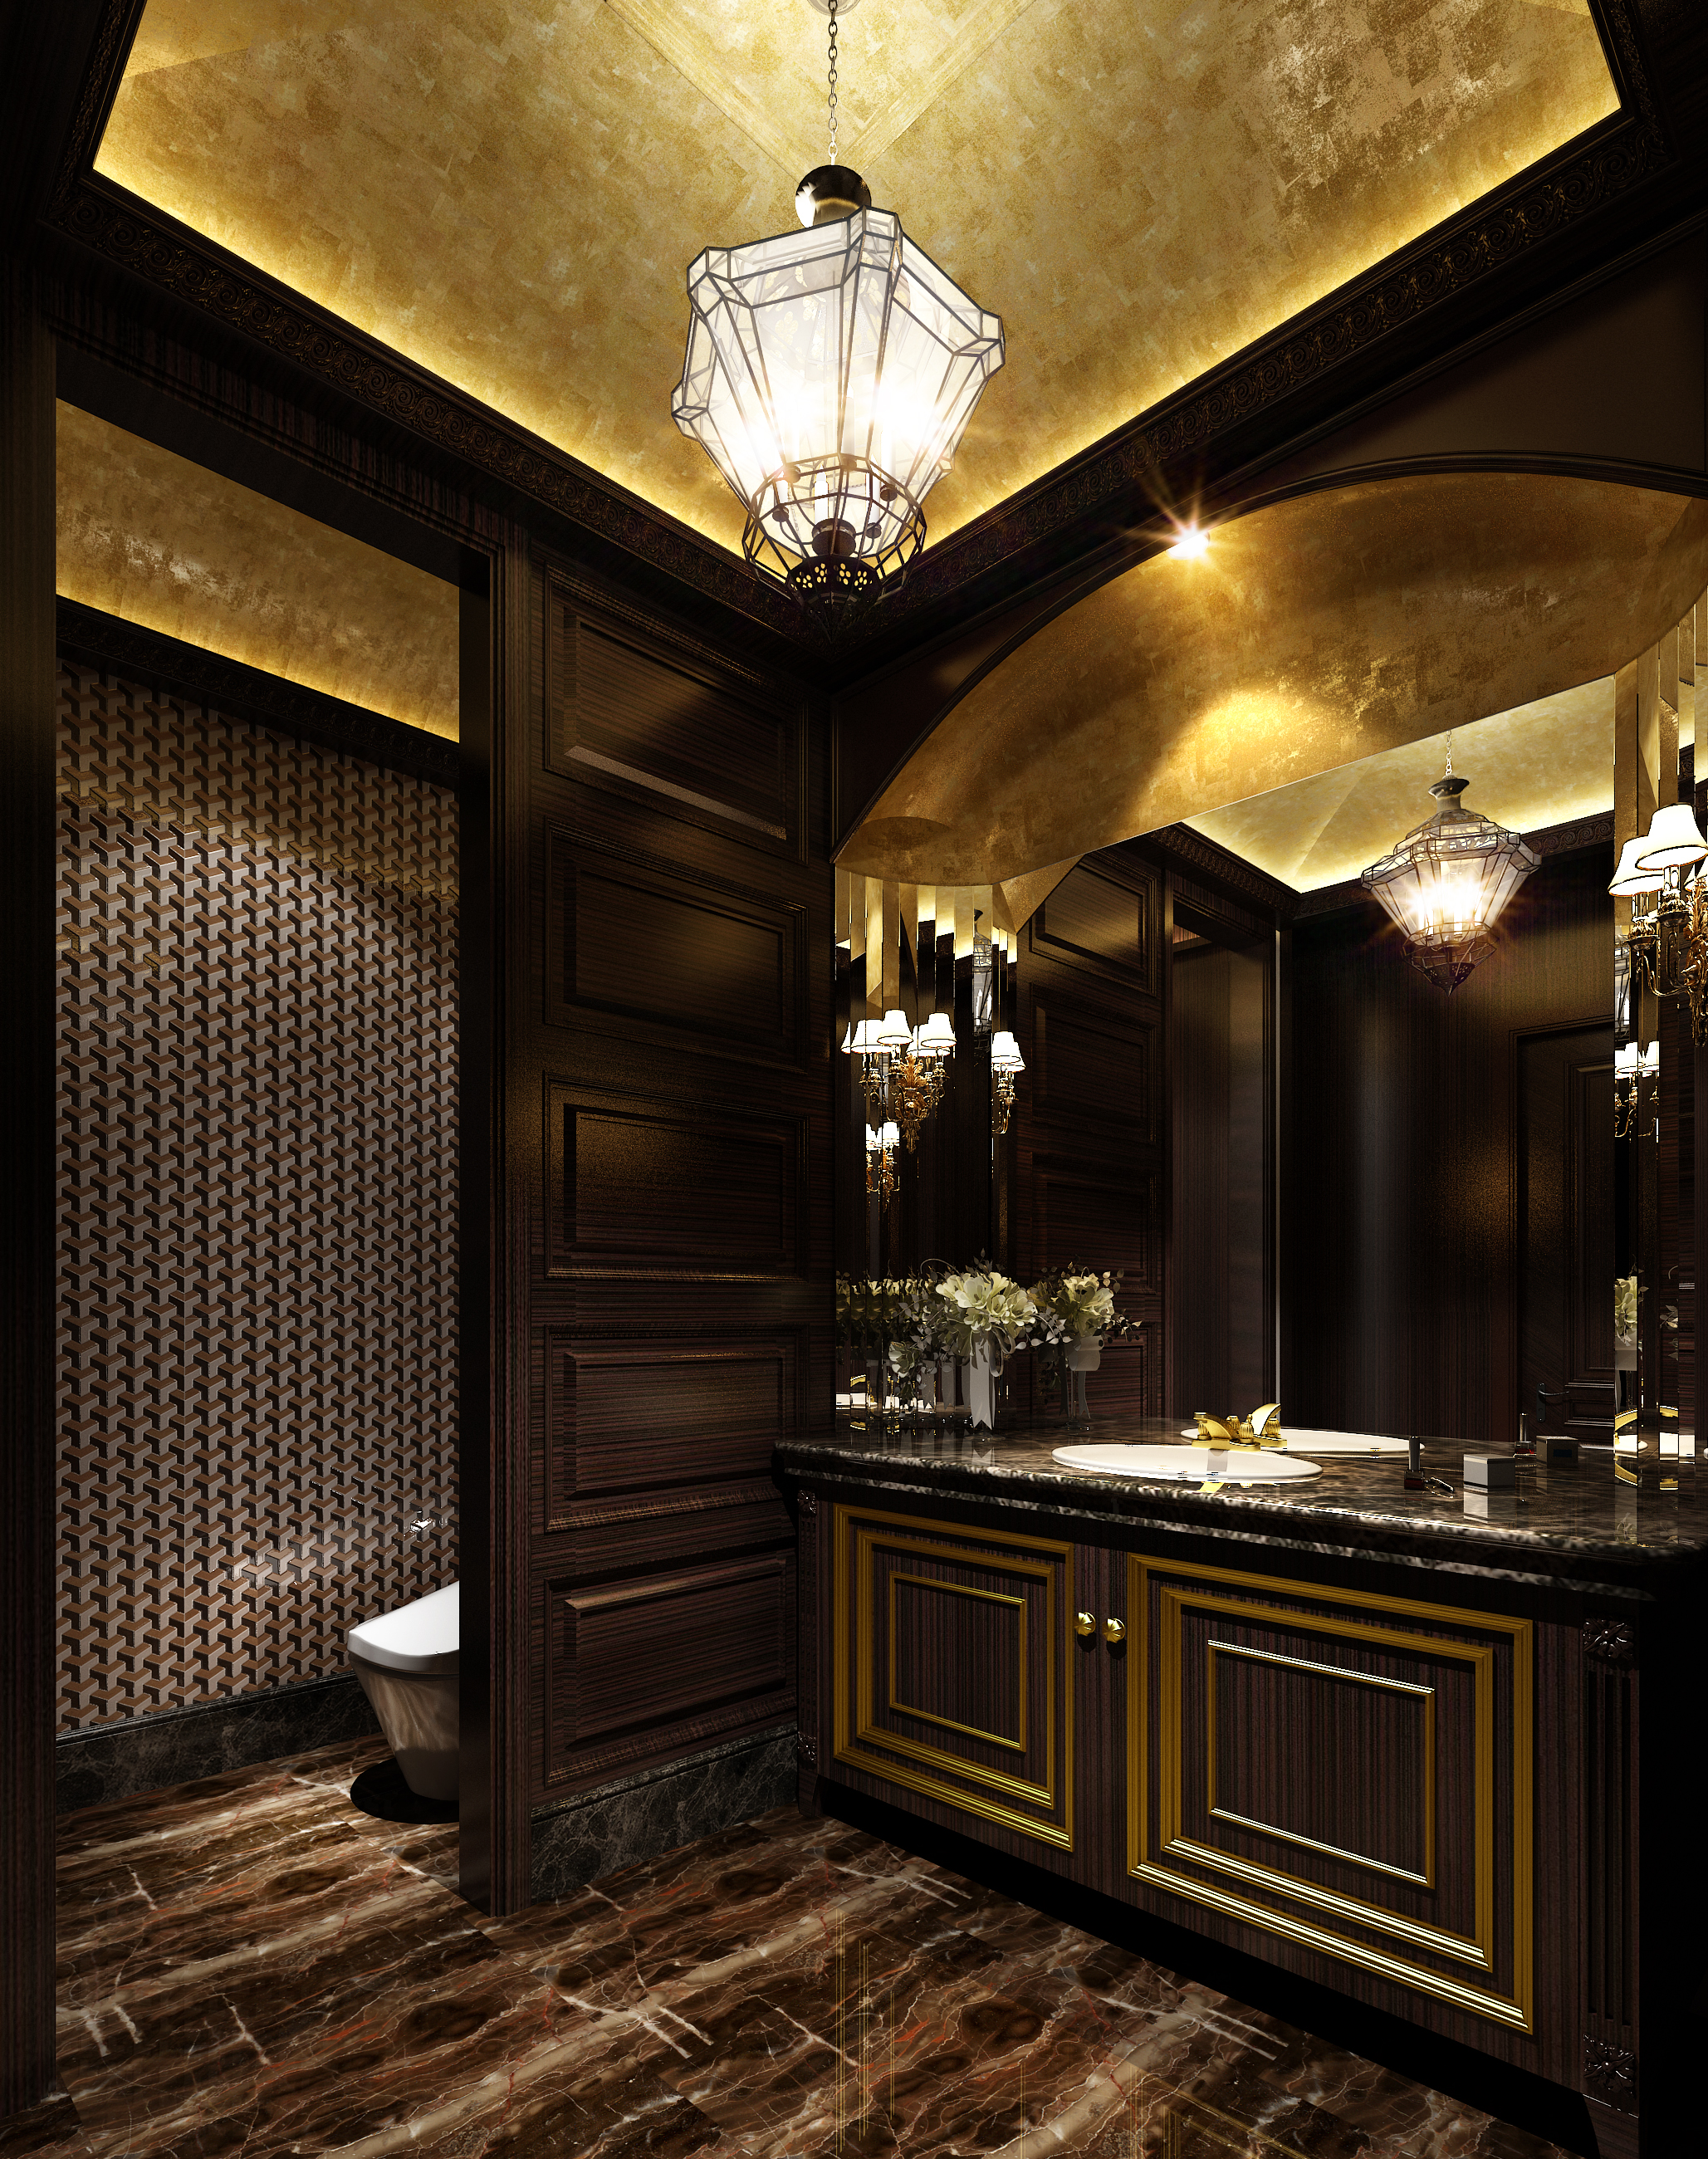 Luxurious Dark Bathroom With Marble Floor 3D Model x CGTrader